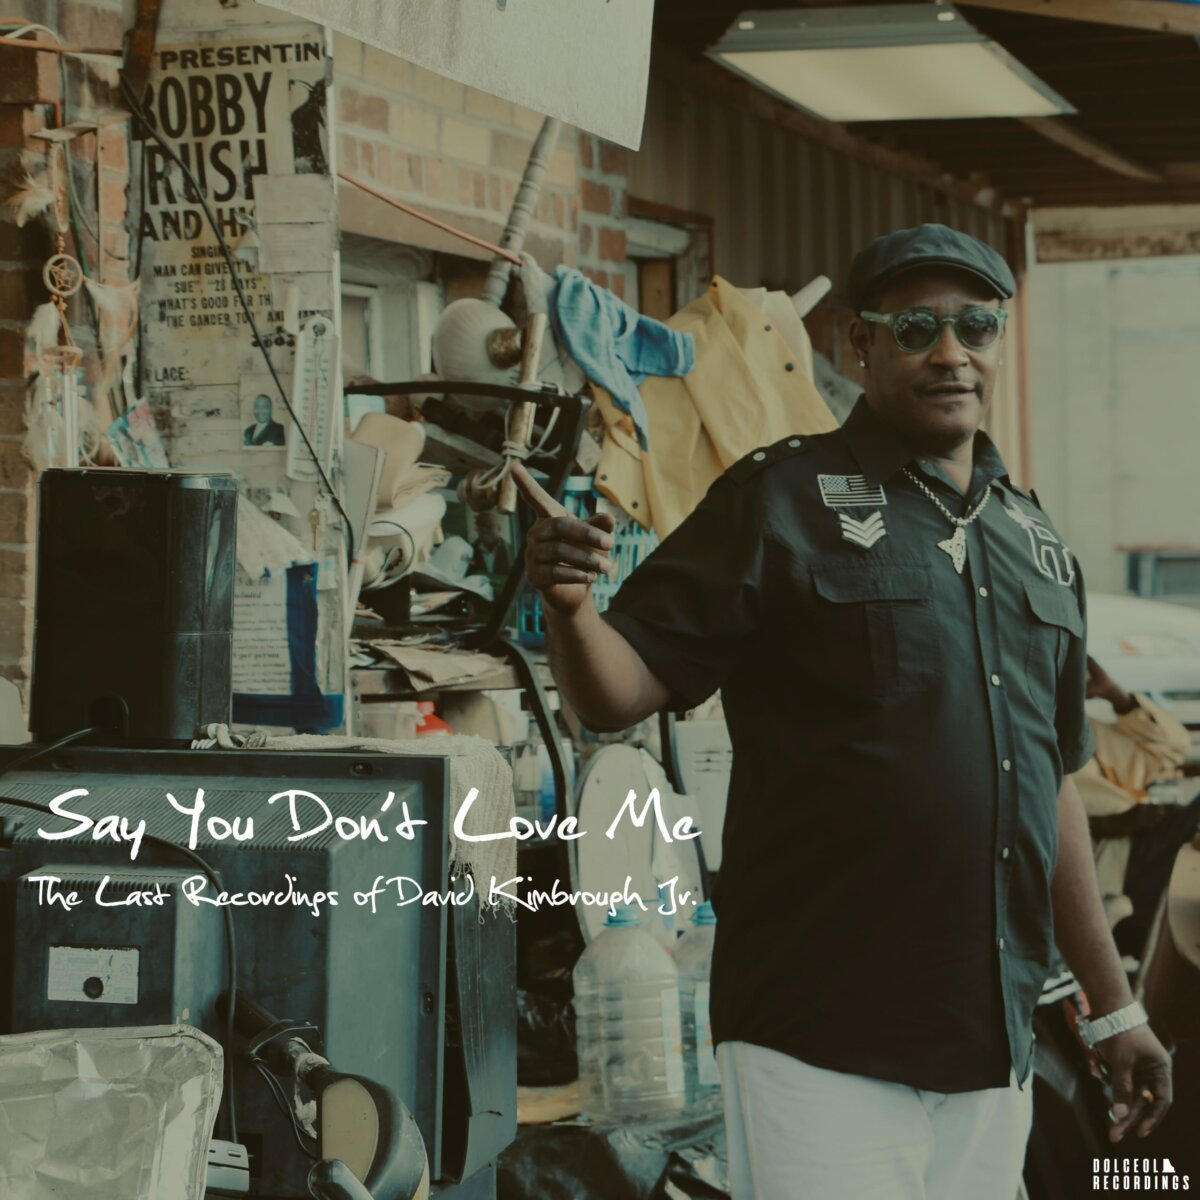 Say You Don't Love Me: The Last Recordings of David Kimbrough Jr.